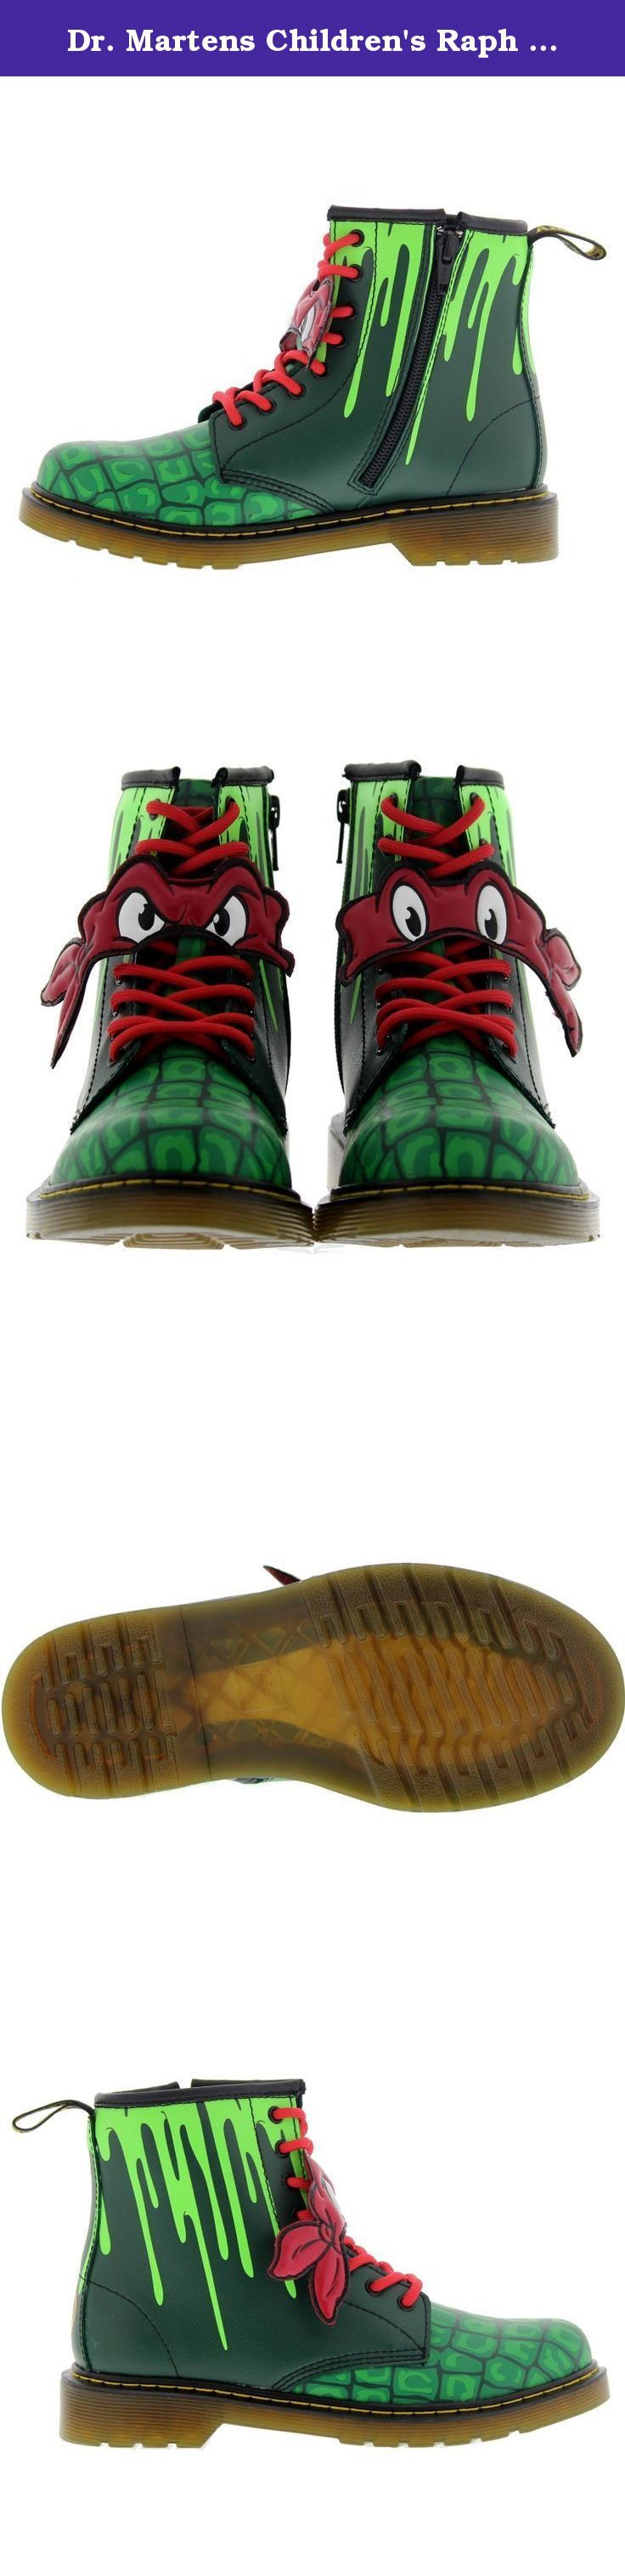 Dr. Martens Children's Raph 8 Eye Boot,Green T Lamper,UK 2 M. The Raph 8 Eye Boot Raphael is drawn from the original Teenage Mutant Ninja Turtles artwork. It features glow-in-the-dark ooze at the top of the quarter, and over-sized, textured turtle shell patterning to the toe. The character's initial is on the right heel and the TMNT logo on the left heel Reflective top binding and color-coded laces that match the character's color scheme An original Dr. Martens air-cushioned sole, hard...